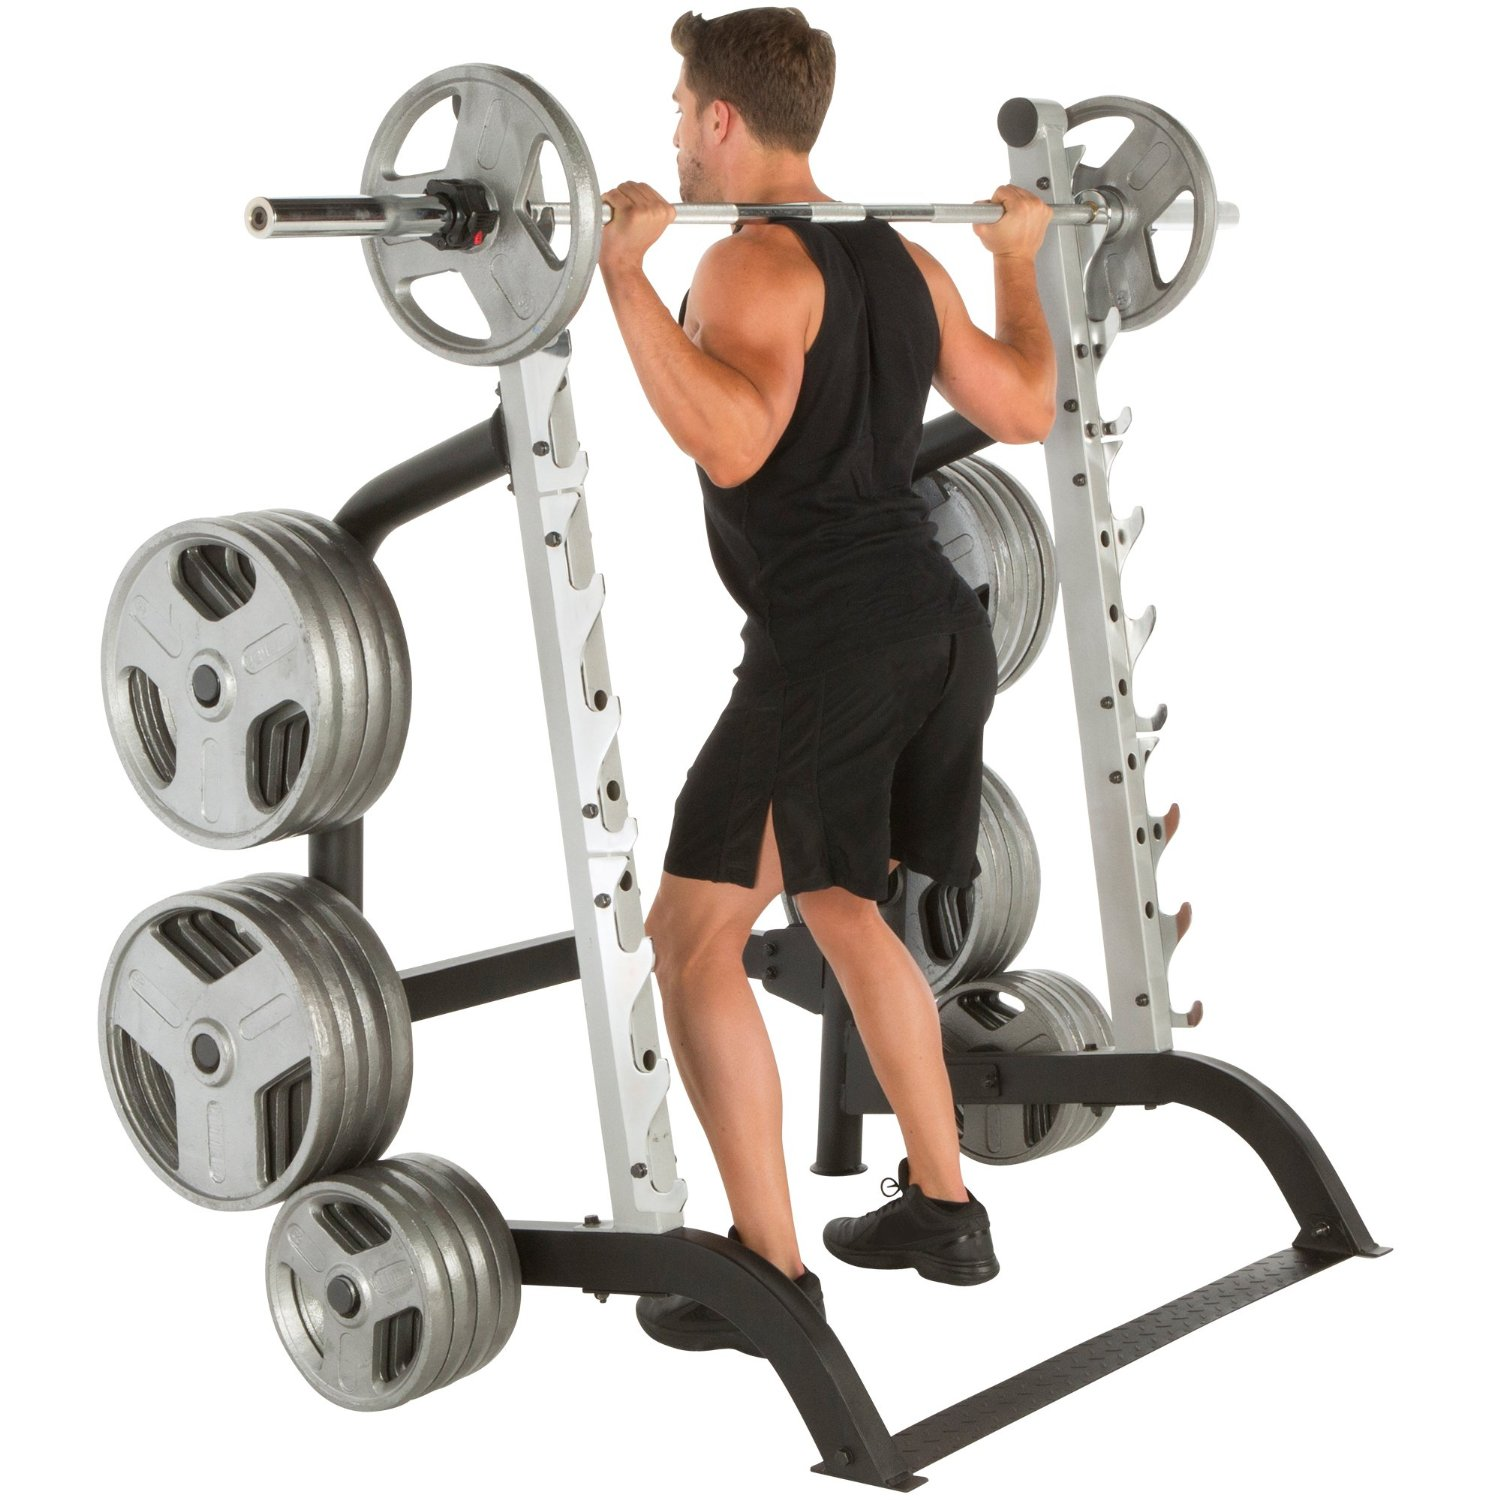 IRONMAN Triathlon X-Class 1500 lb High Capacity Light Commercial Squat Rack